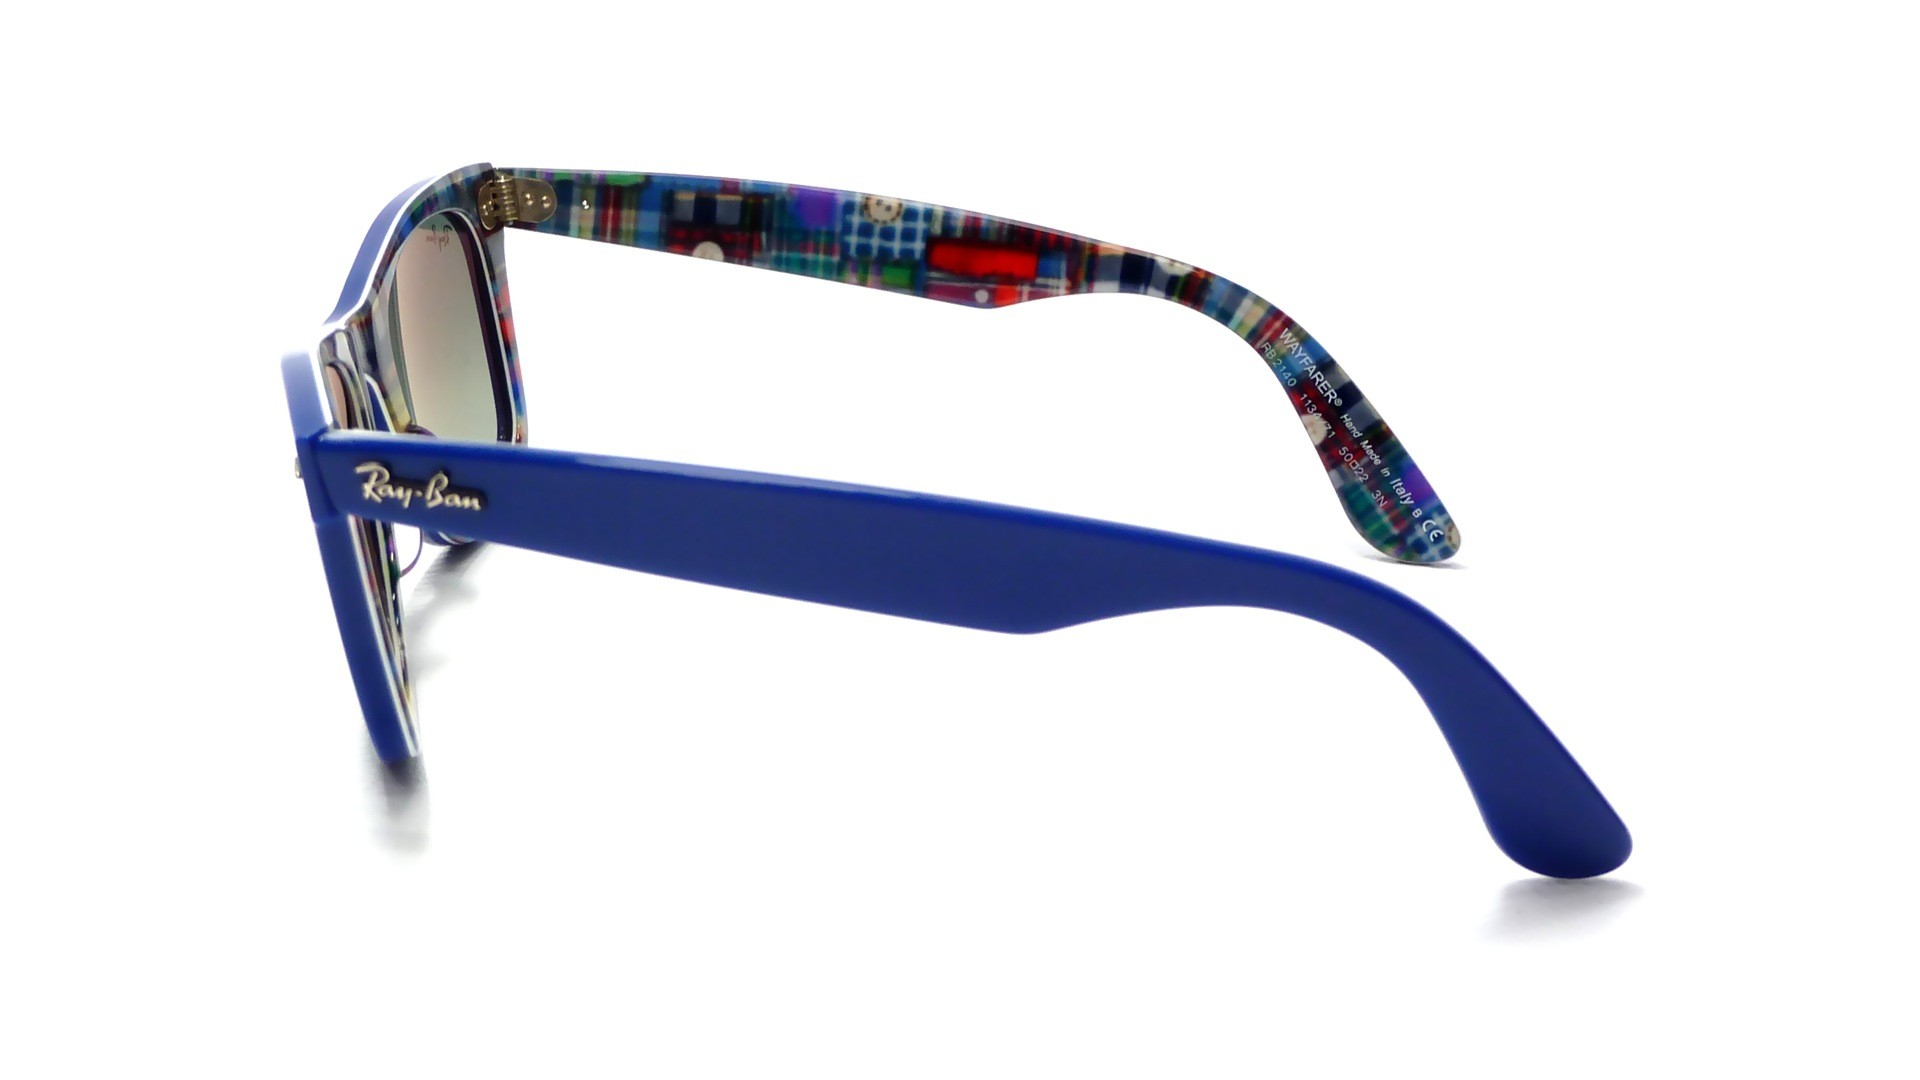 621bb9633a1 Ray Ban 2140 Limited Edition « Heritage Malta